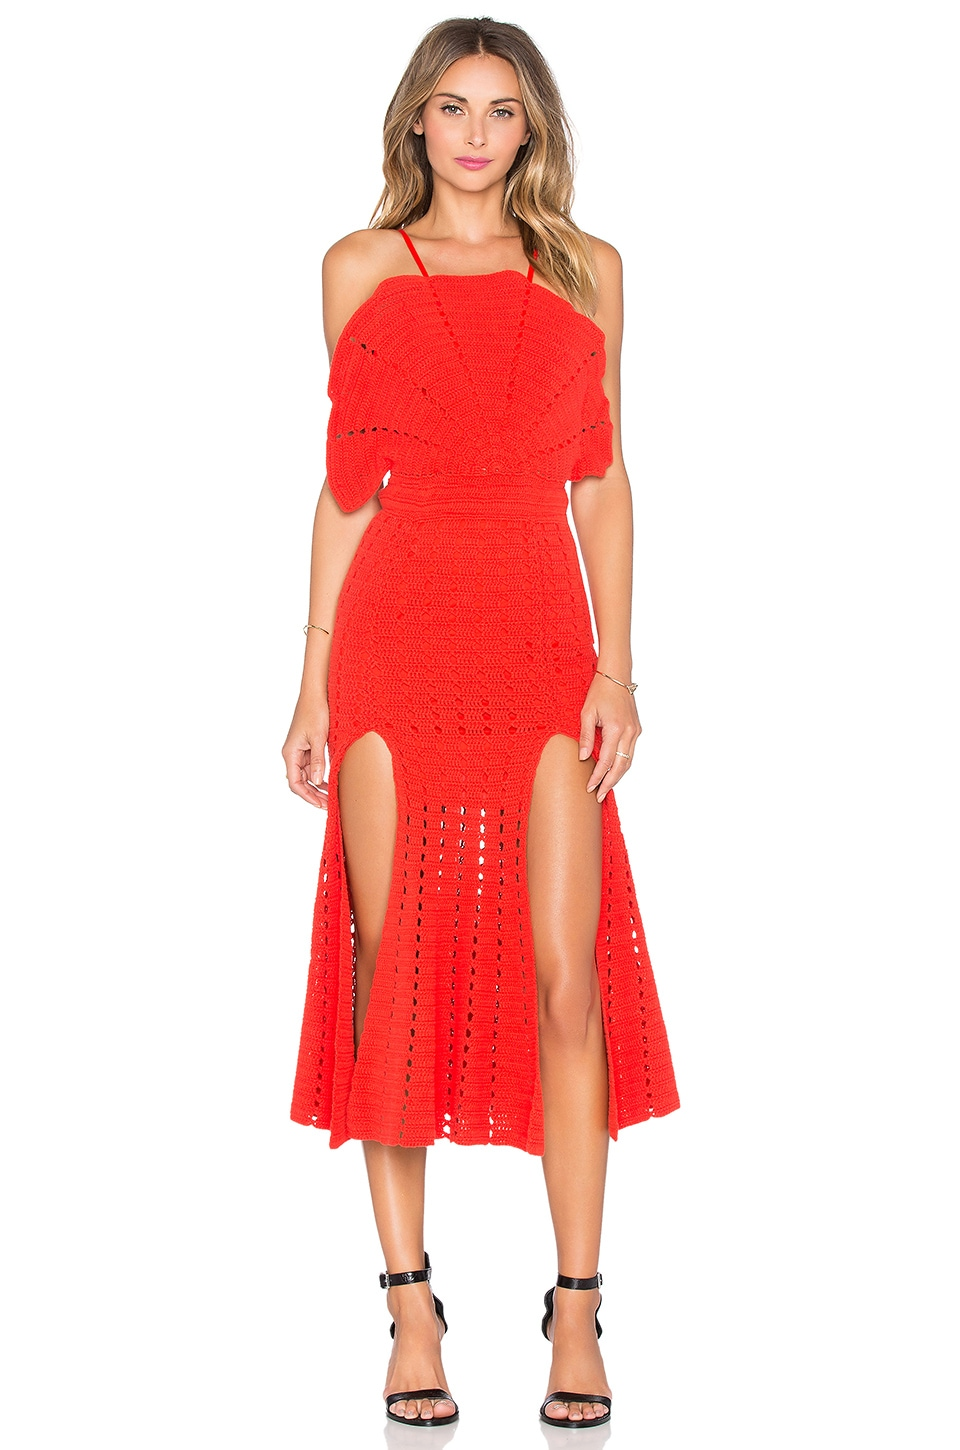 Alice McCall Room Is On Fire Dress in Red